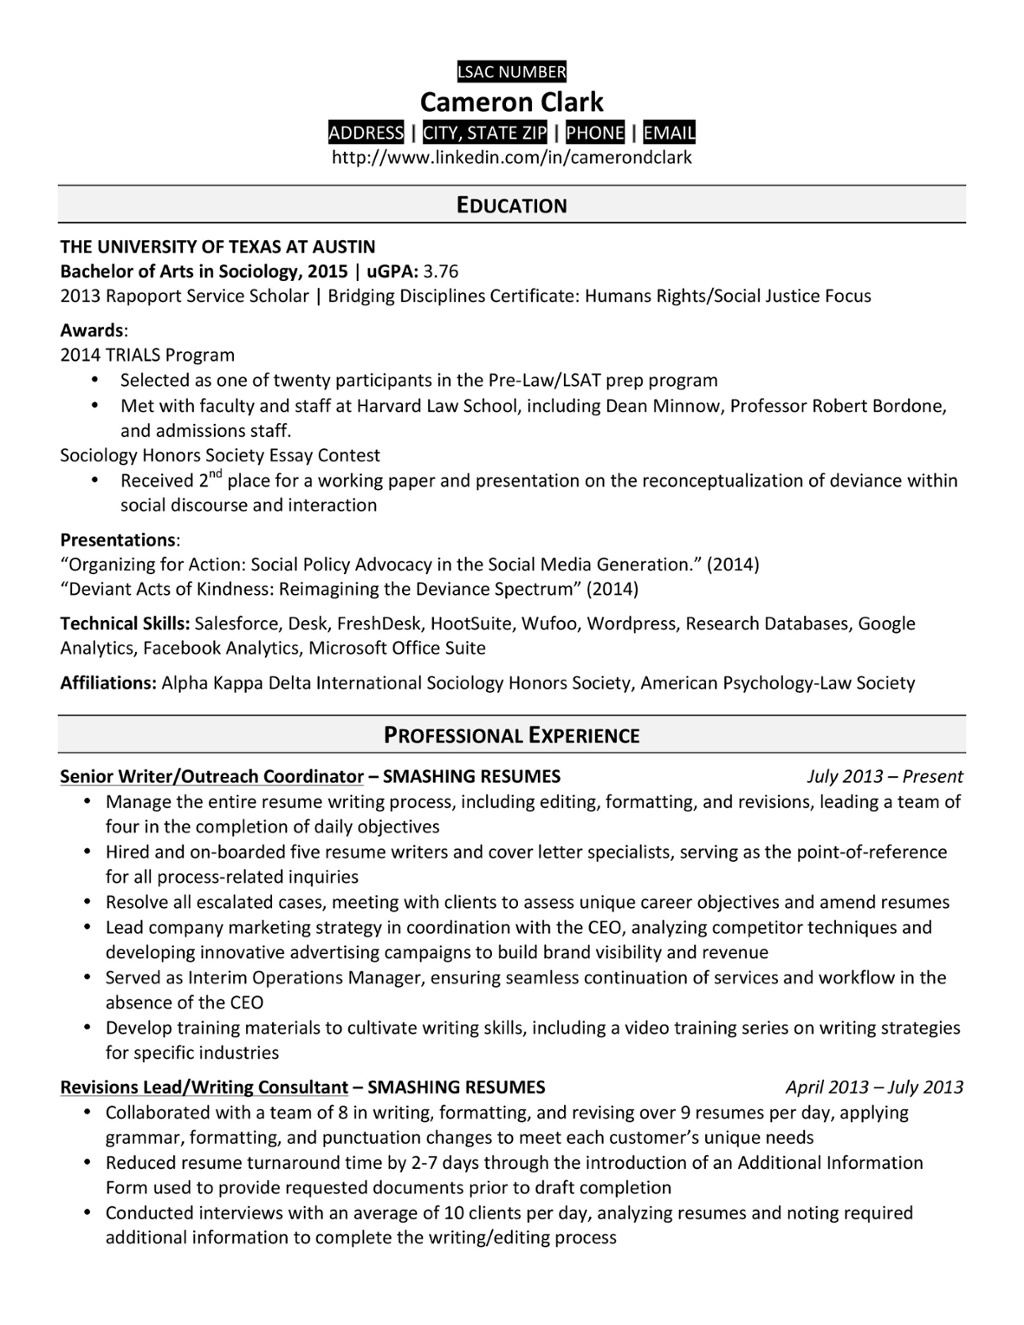 7 law school resume templates  prepping your resume for